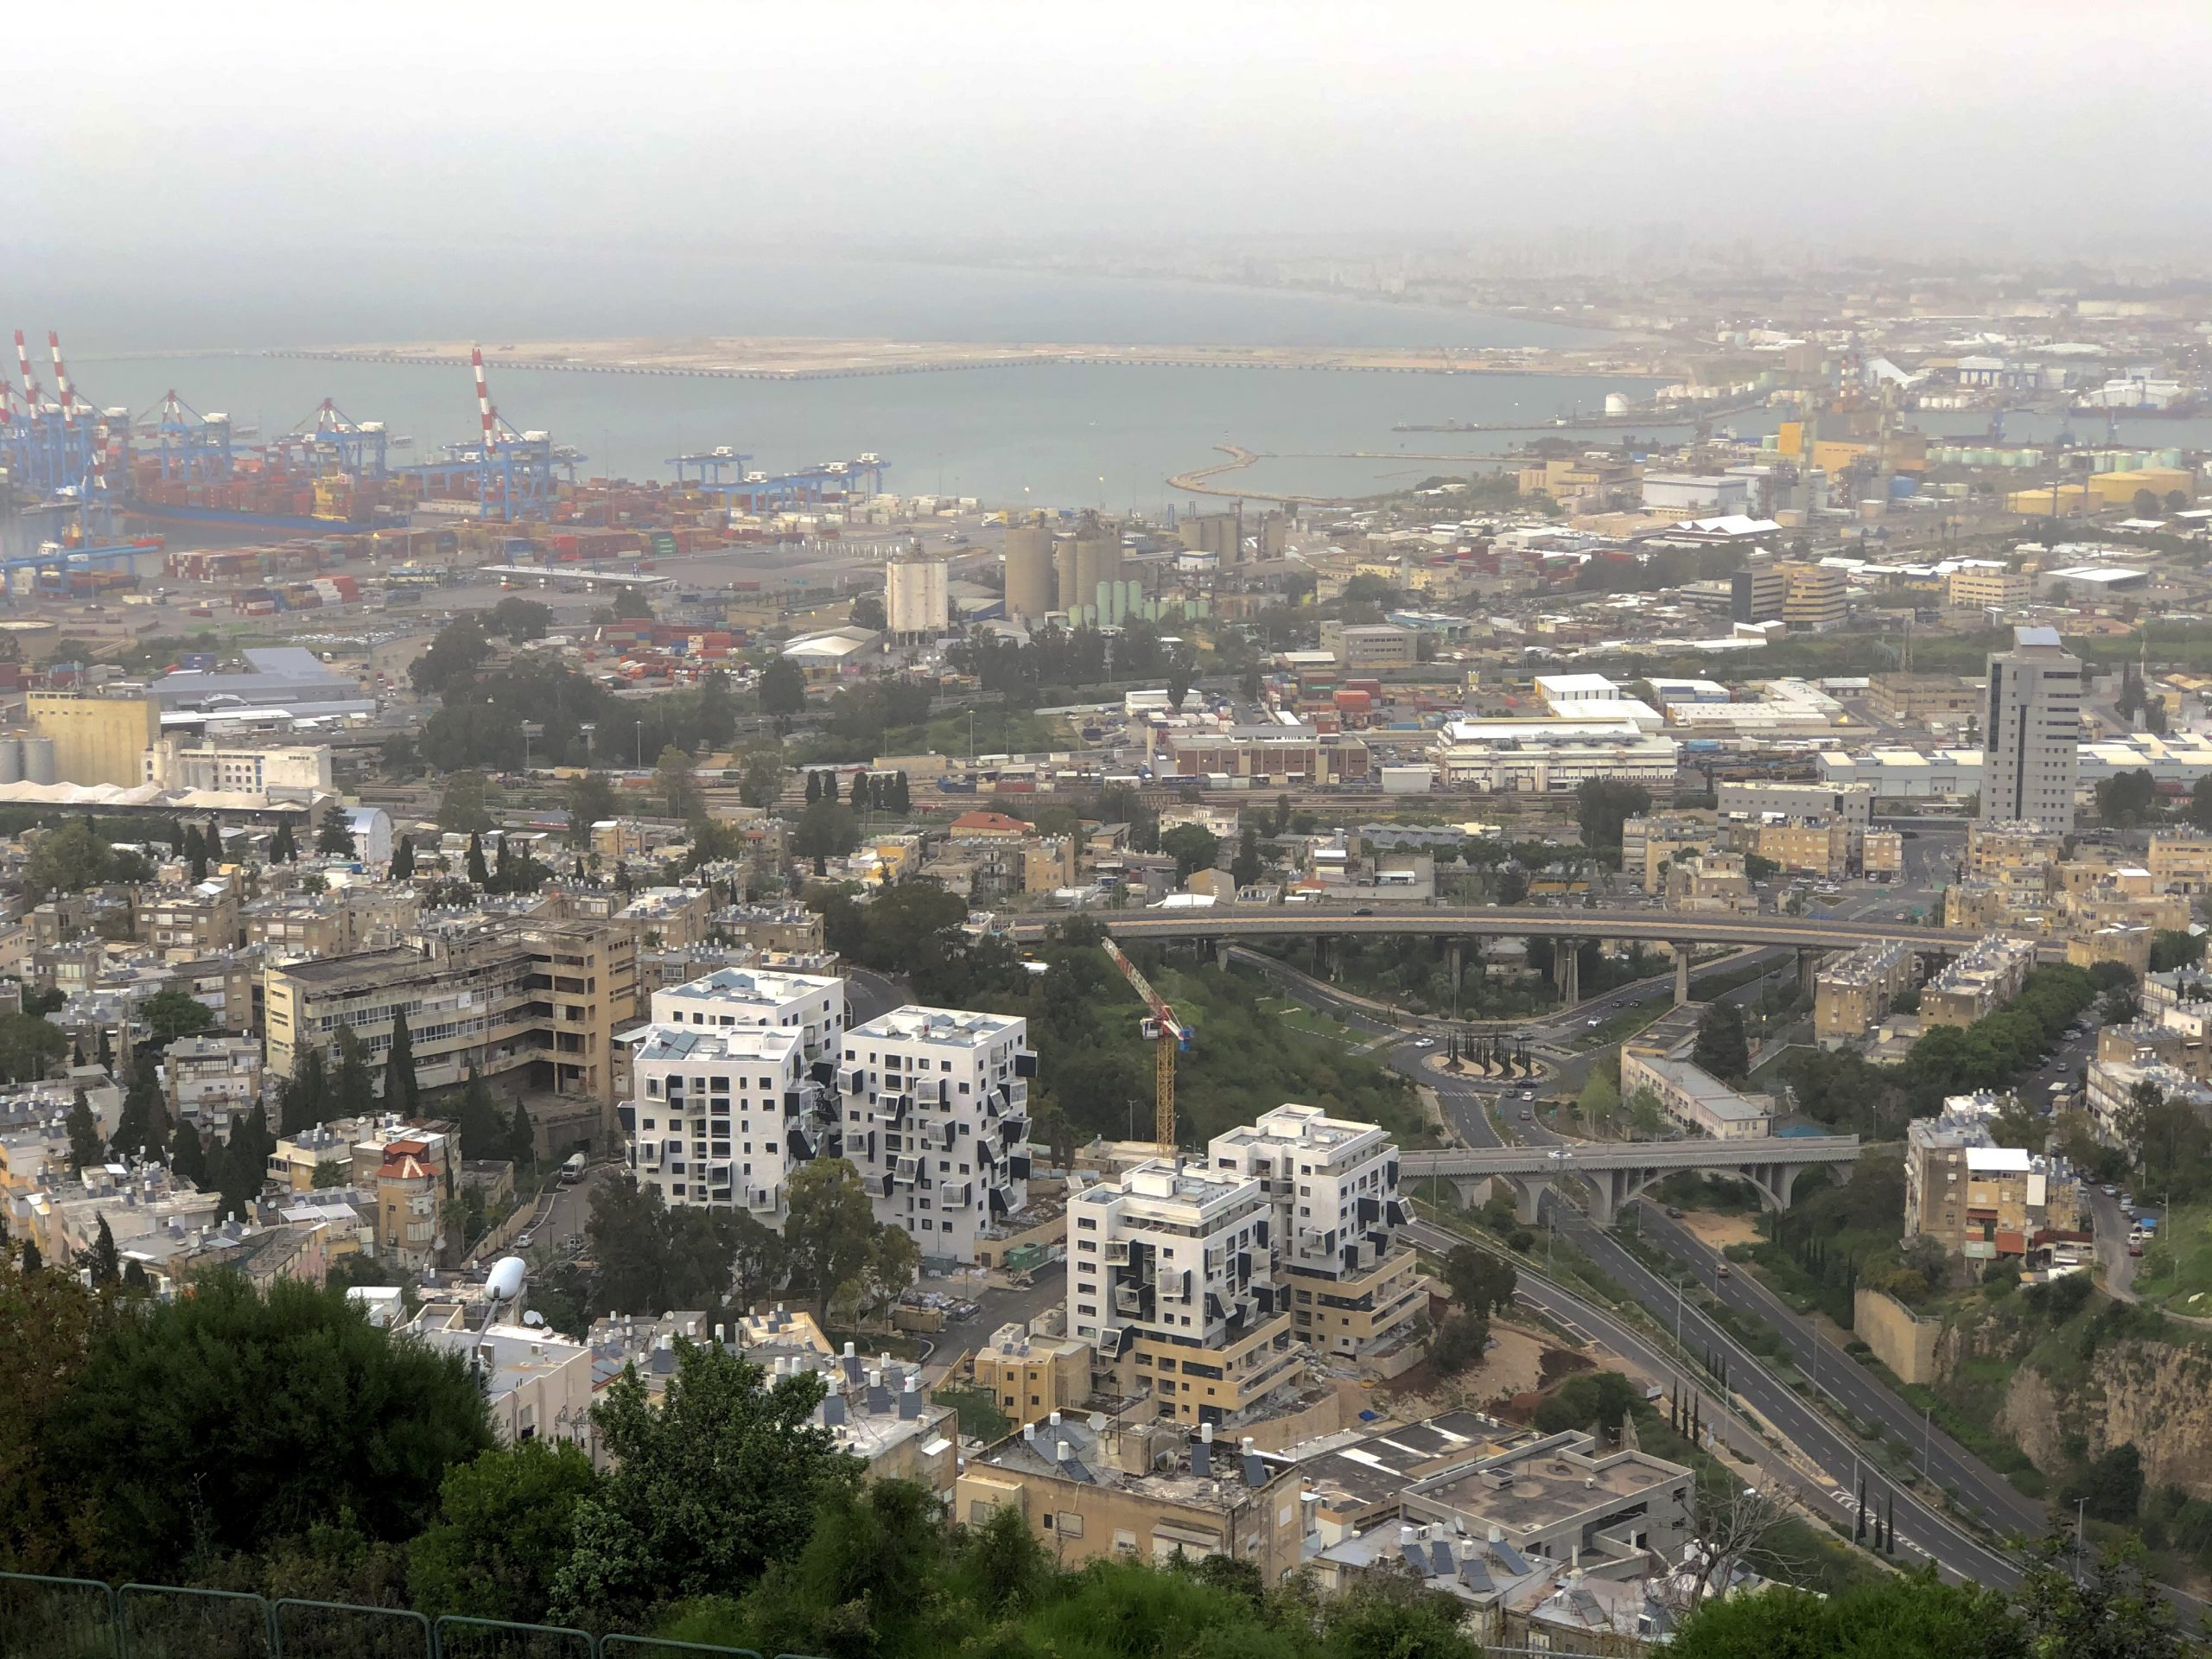 COVID-19: Haifa under lockdown